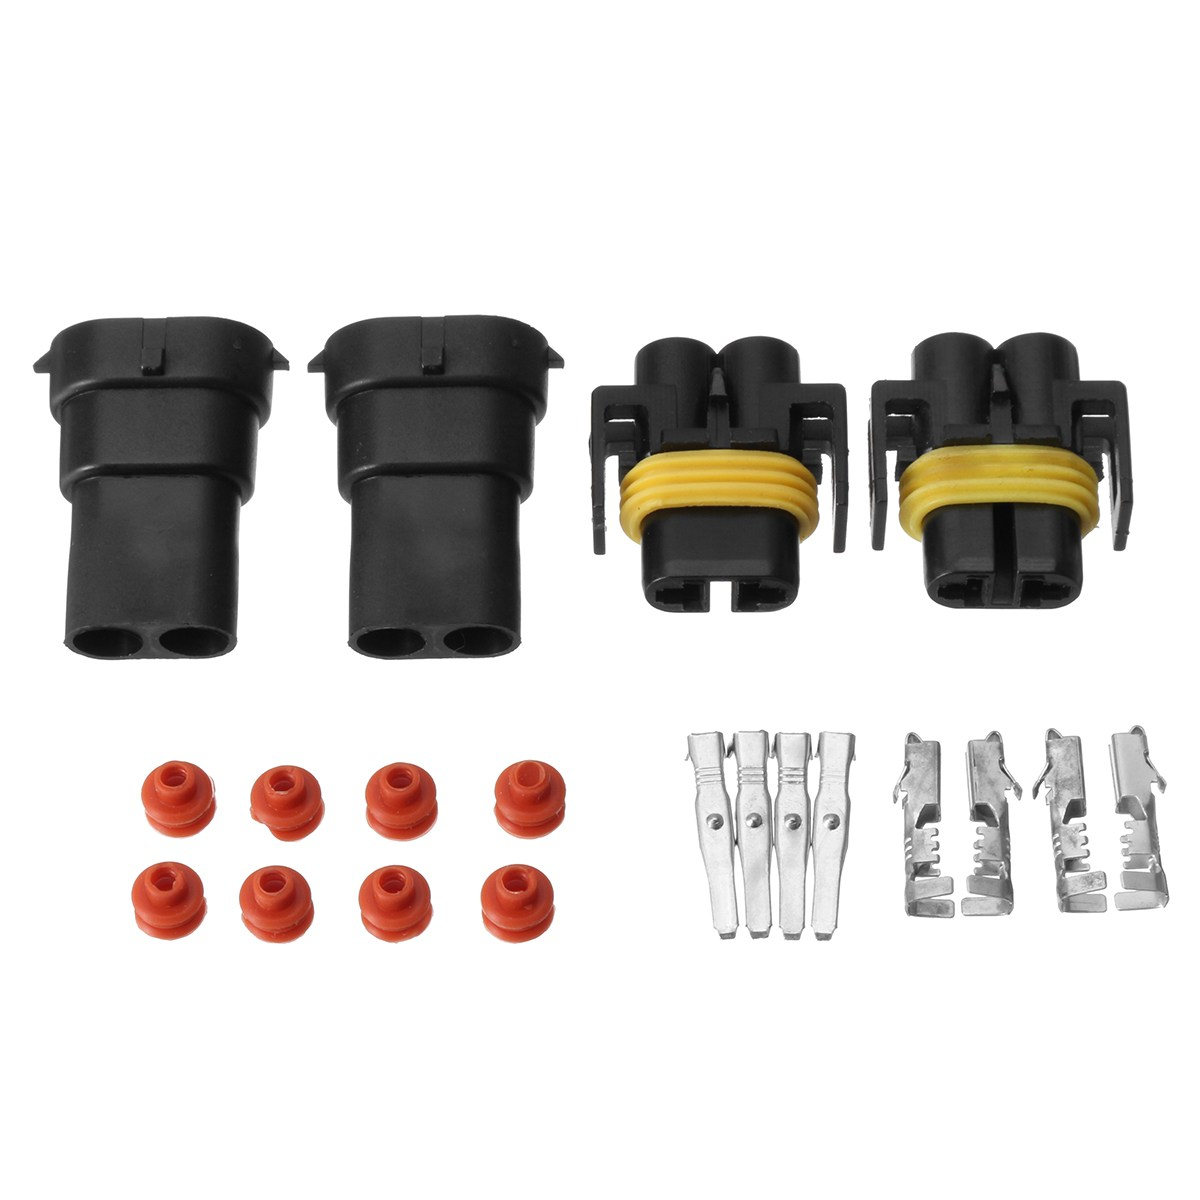 2Pair H8 H9 H11 880 881 Female And Male Adapter Harness Car Auto Wire Connectors For HID Xenon Light Socket Plug m12 aviation plug 8pins stragiht female or male plugs sensor connector socket connectors